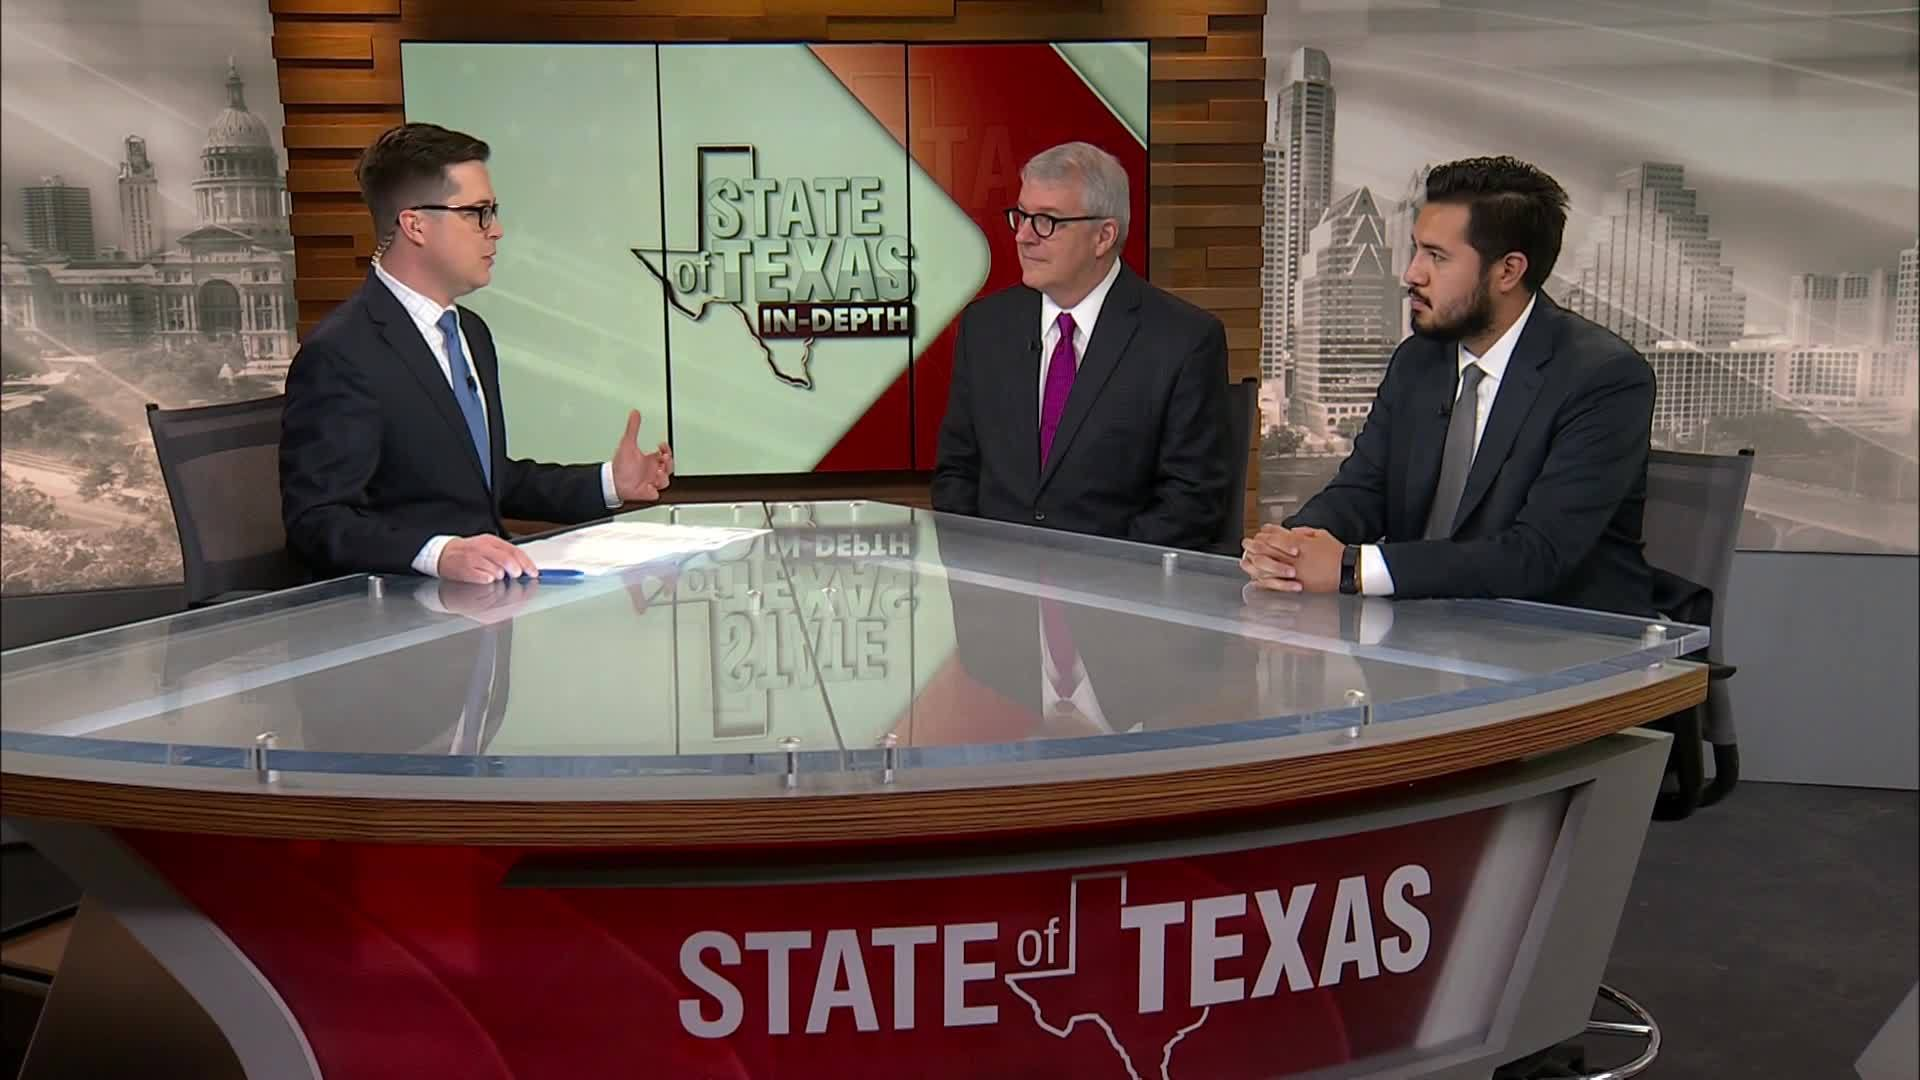 State of Texas - May 26th Roundtable